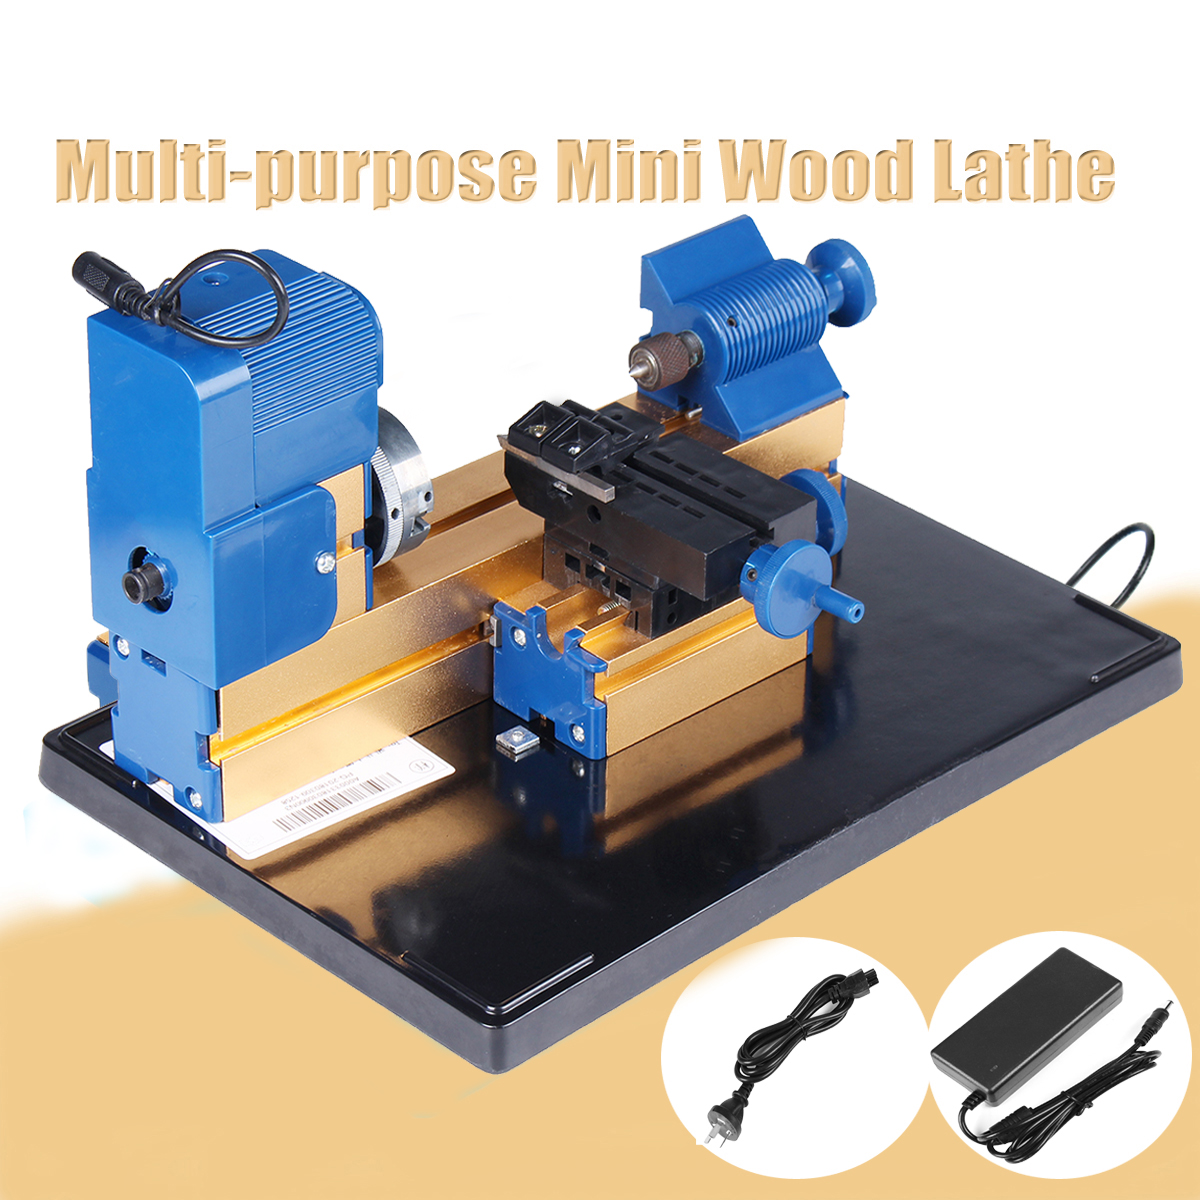 DC 12V 24W 2A Multifunction Mini Wood Lathe Motorized Jig saw Bead Grinder Driller Woodworking Turning Cutting Bead Tool